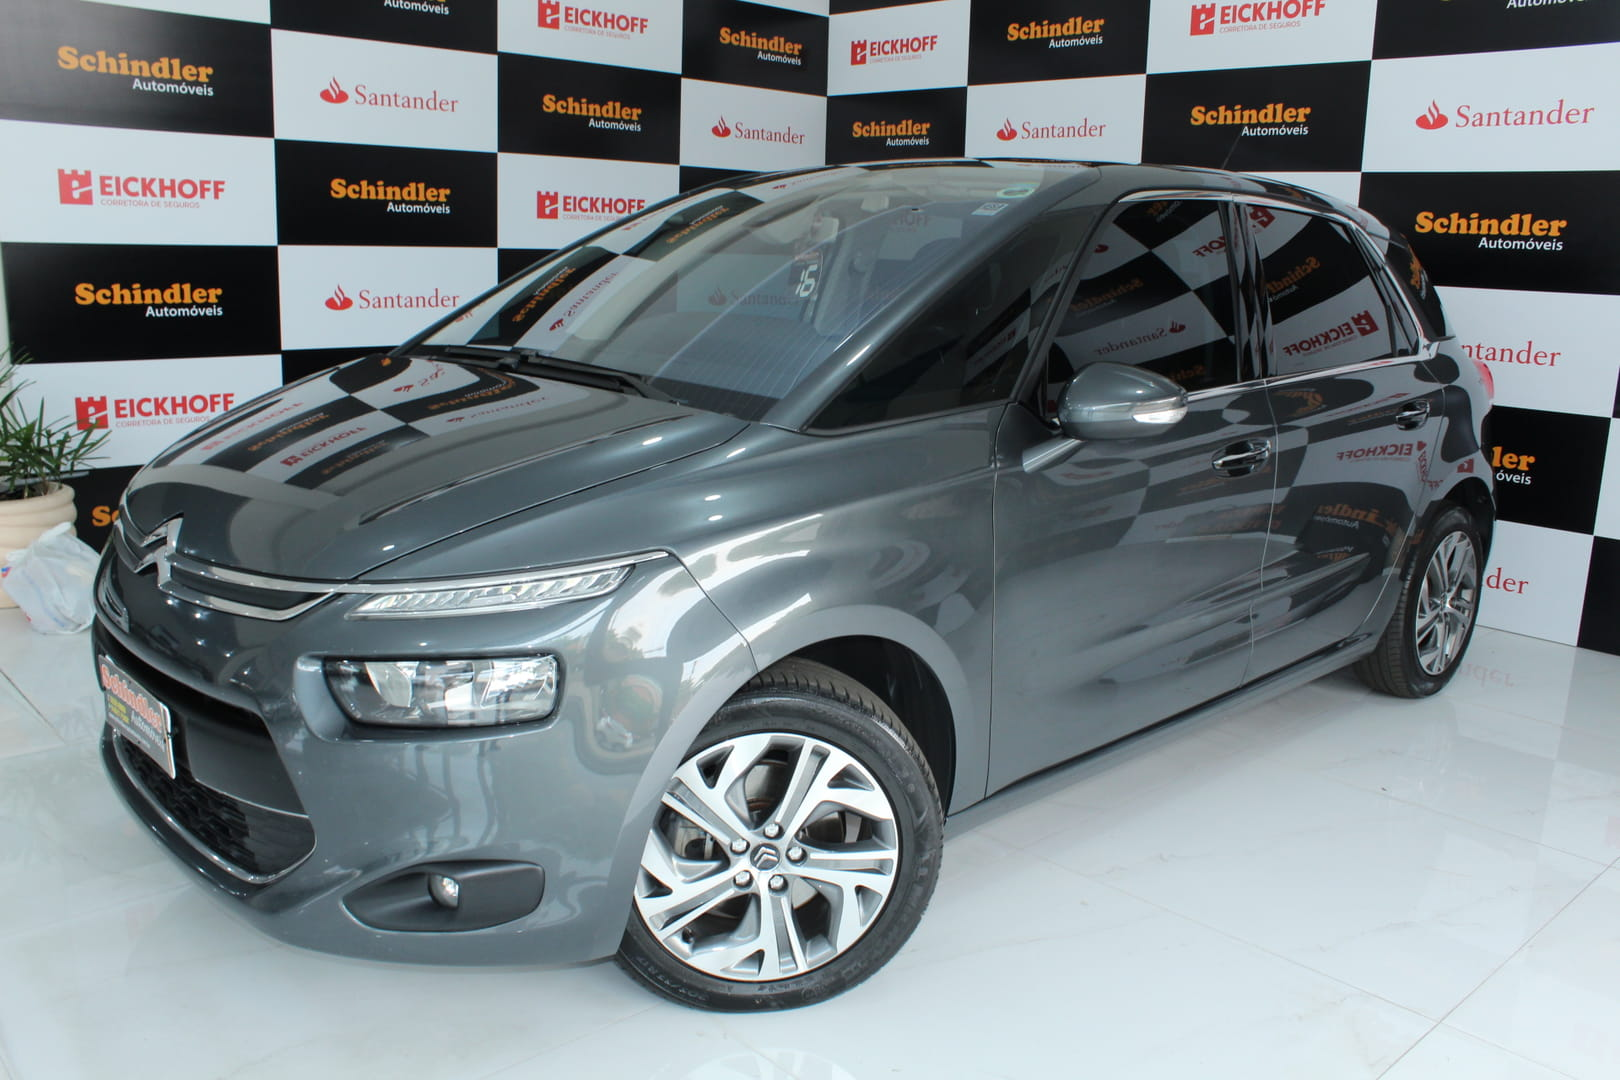 CITROEN C4 PICASSO 1.6 INTENSIVE 16V TURBO